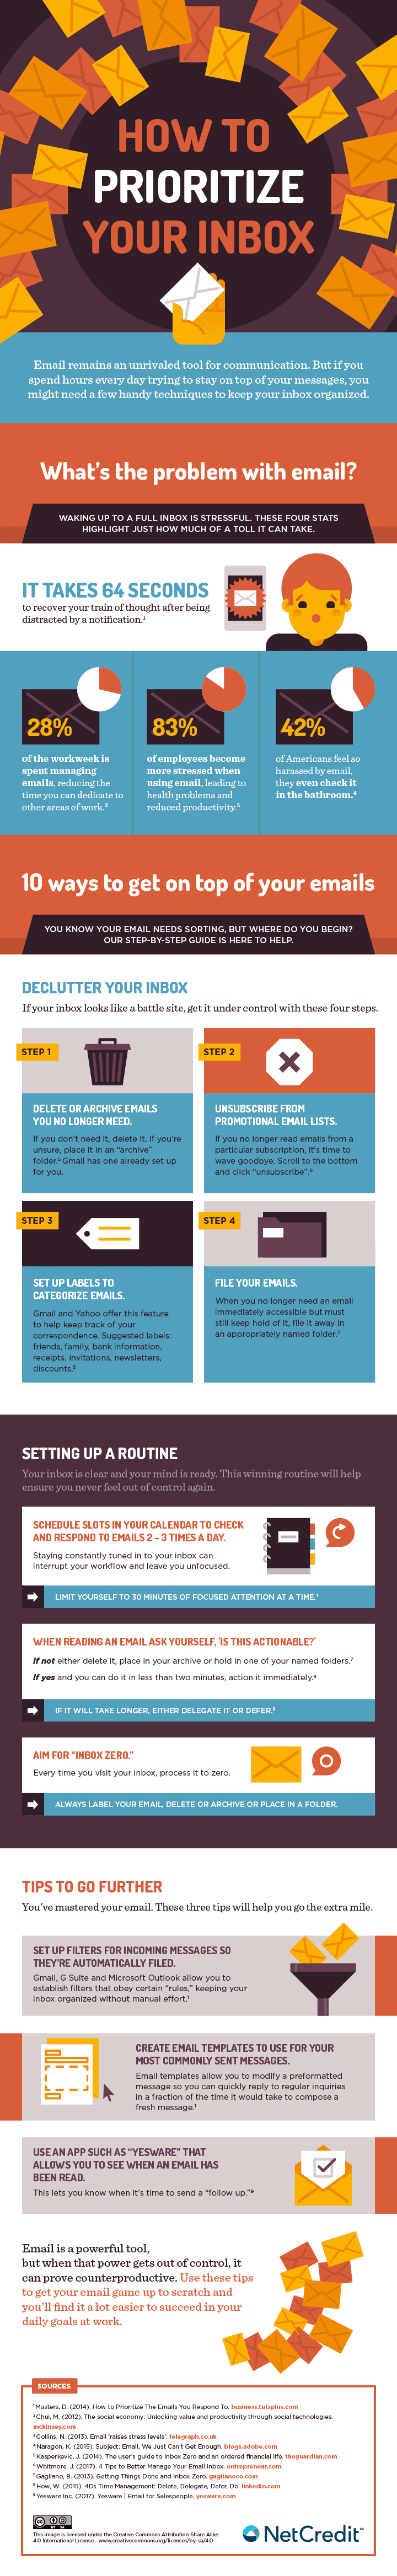 How to Prioritize Your Inbox - #infographic